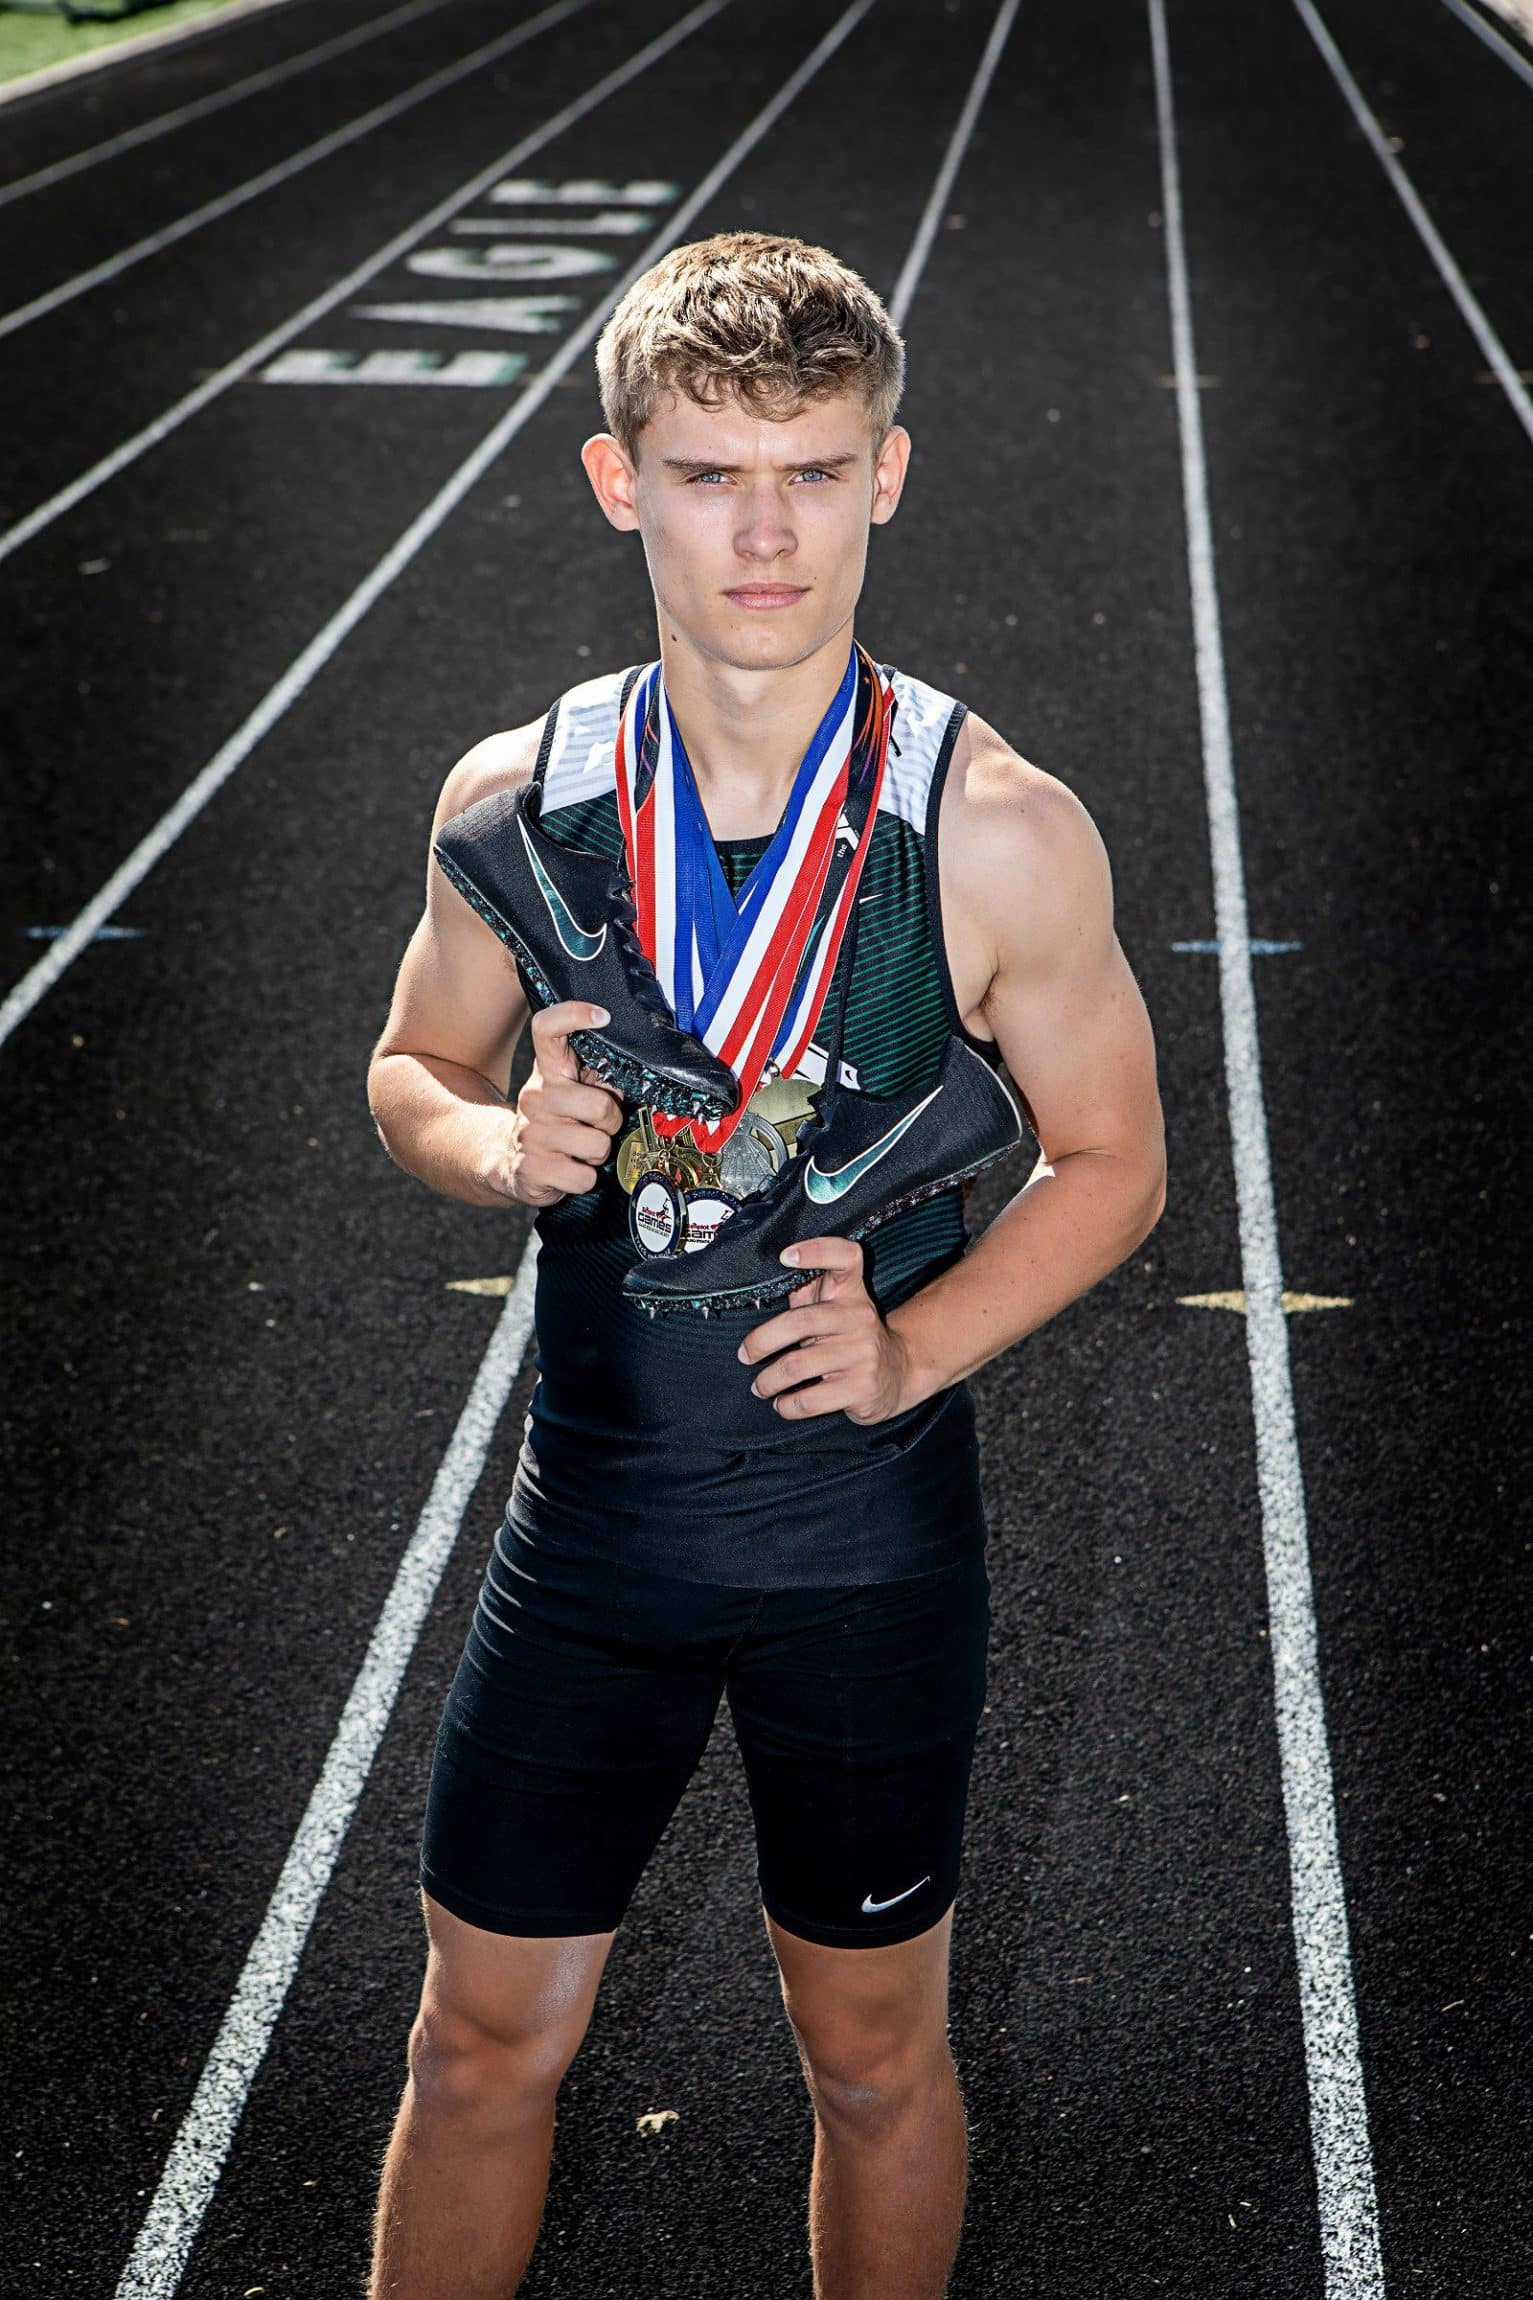 Man with medals holding shoes standing on a track.